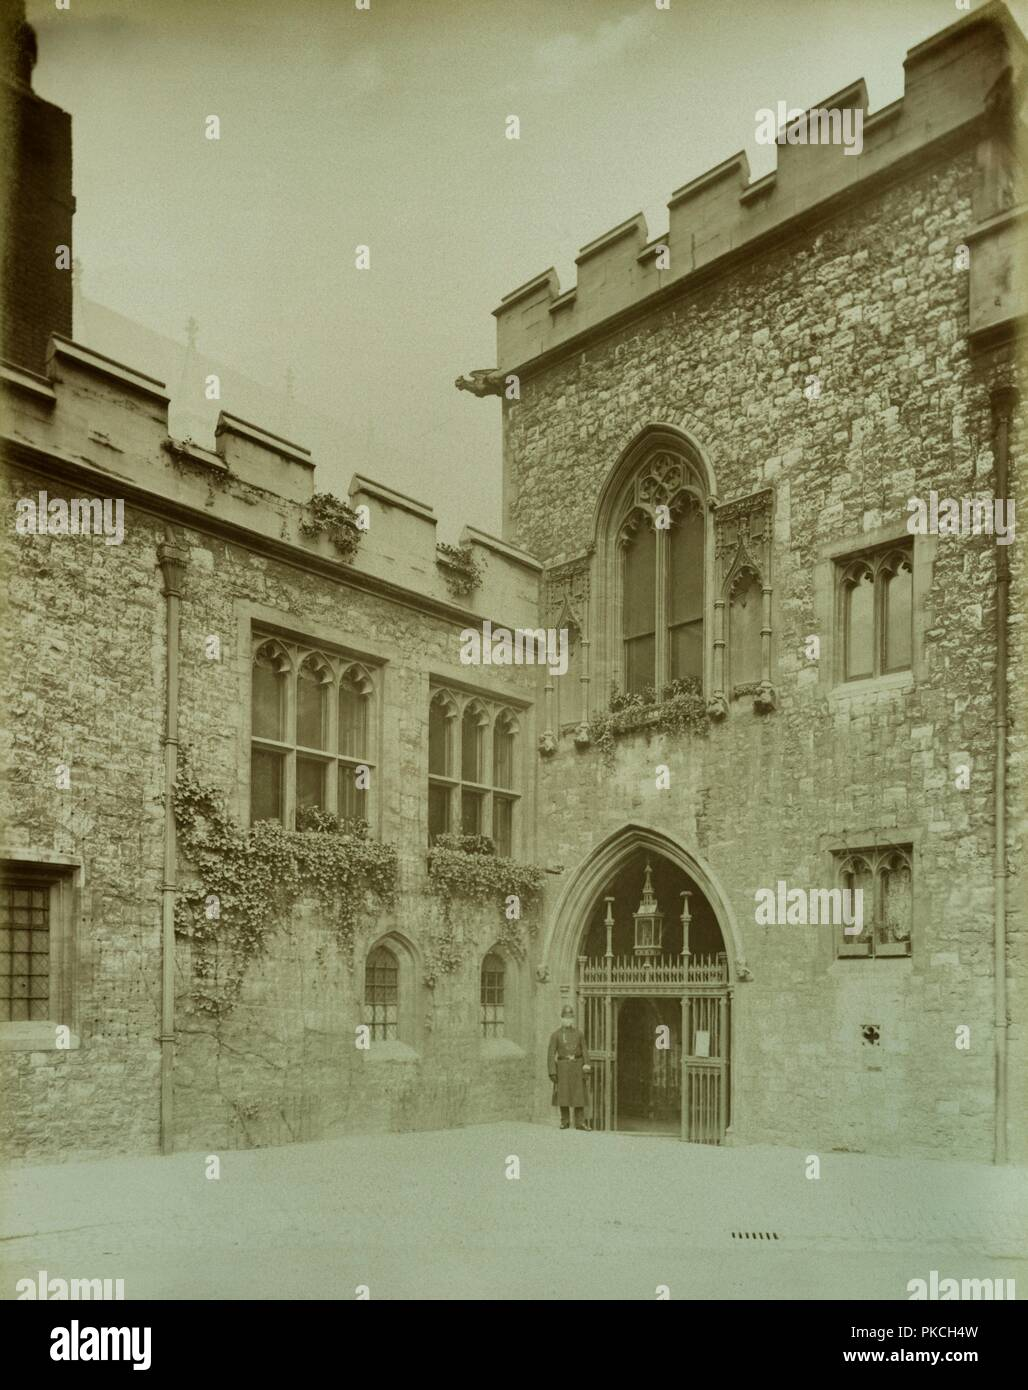 Dean's Yard, Westminster Abbey, London, 1886. Entrance to the cloisters from Dean's Yard with a policeman standing beside the gate. - Stock Image